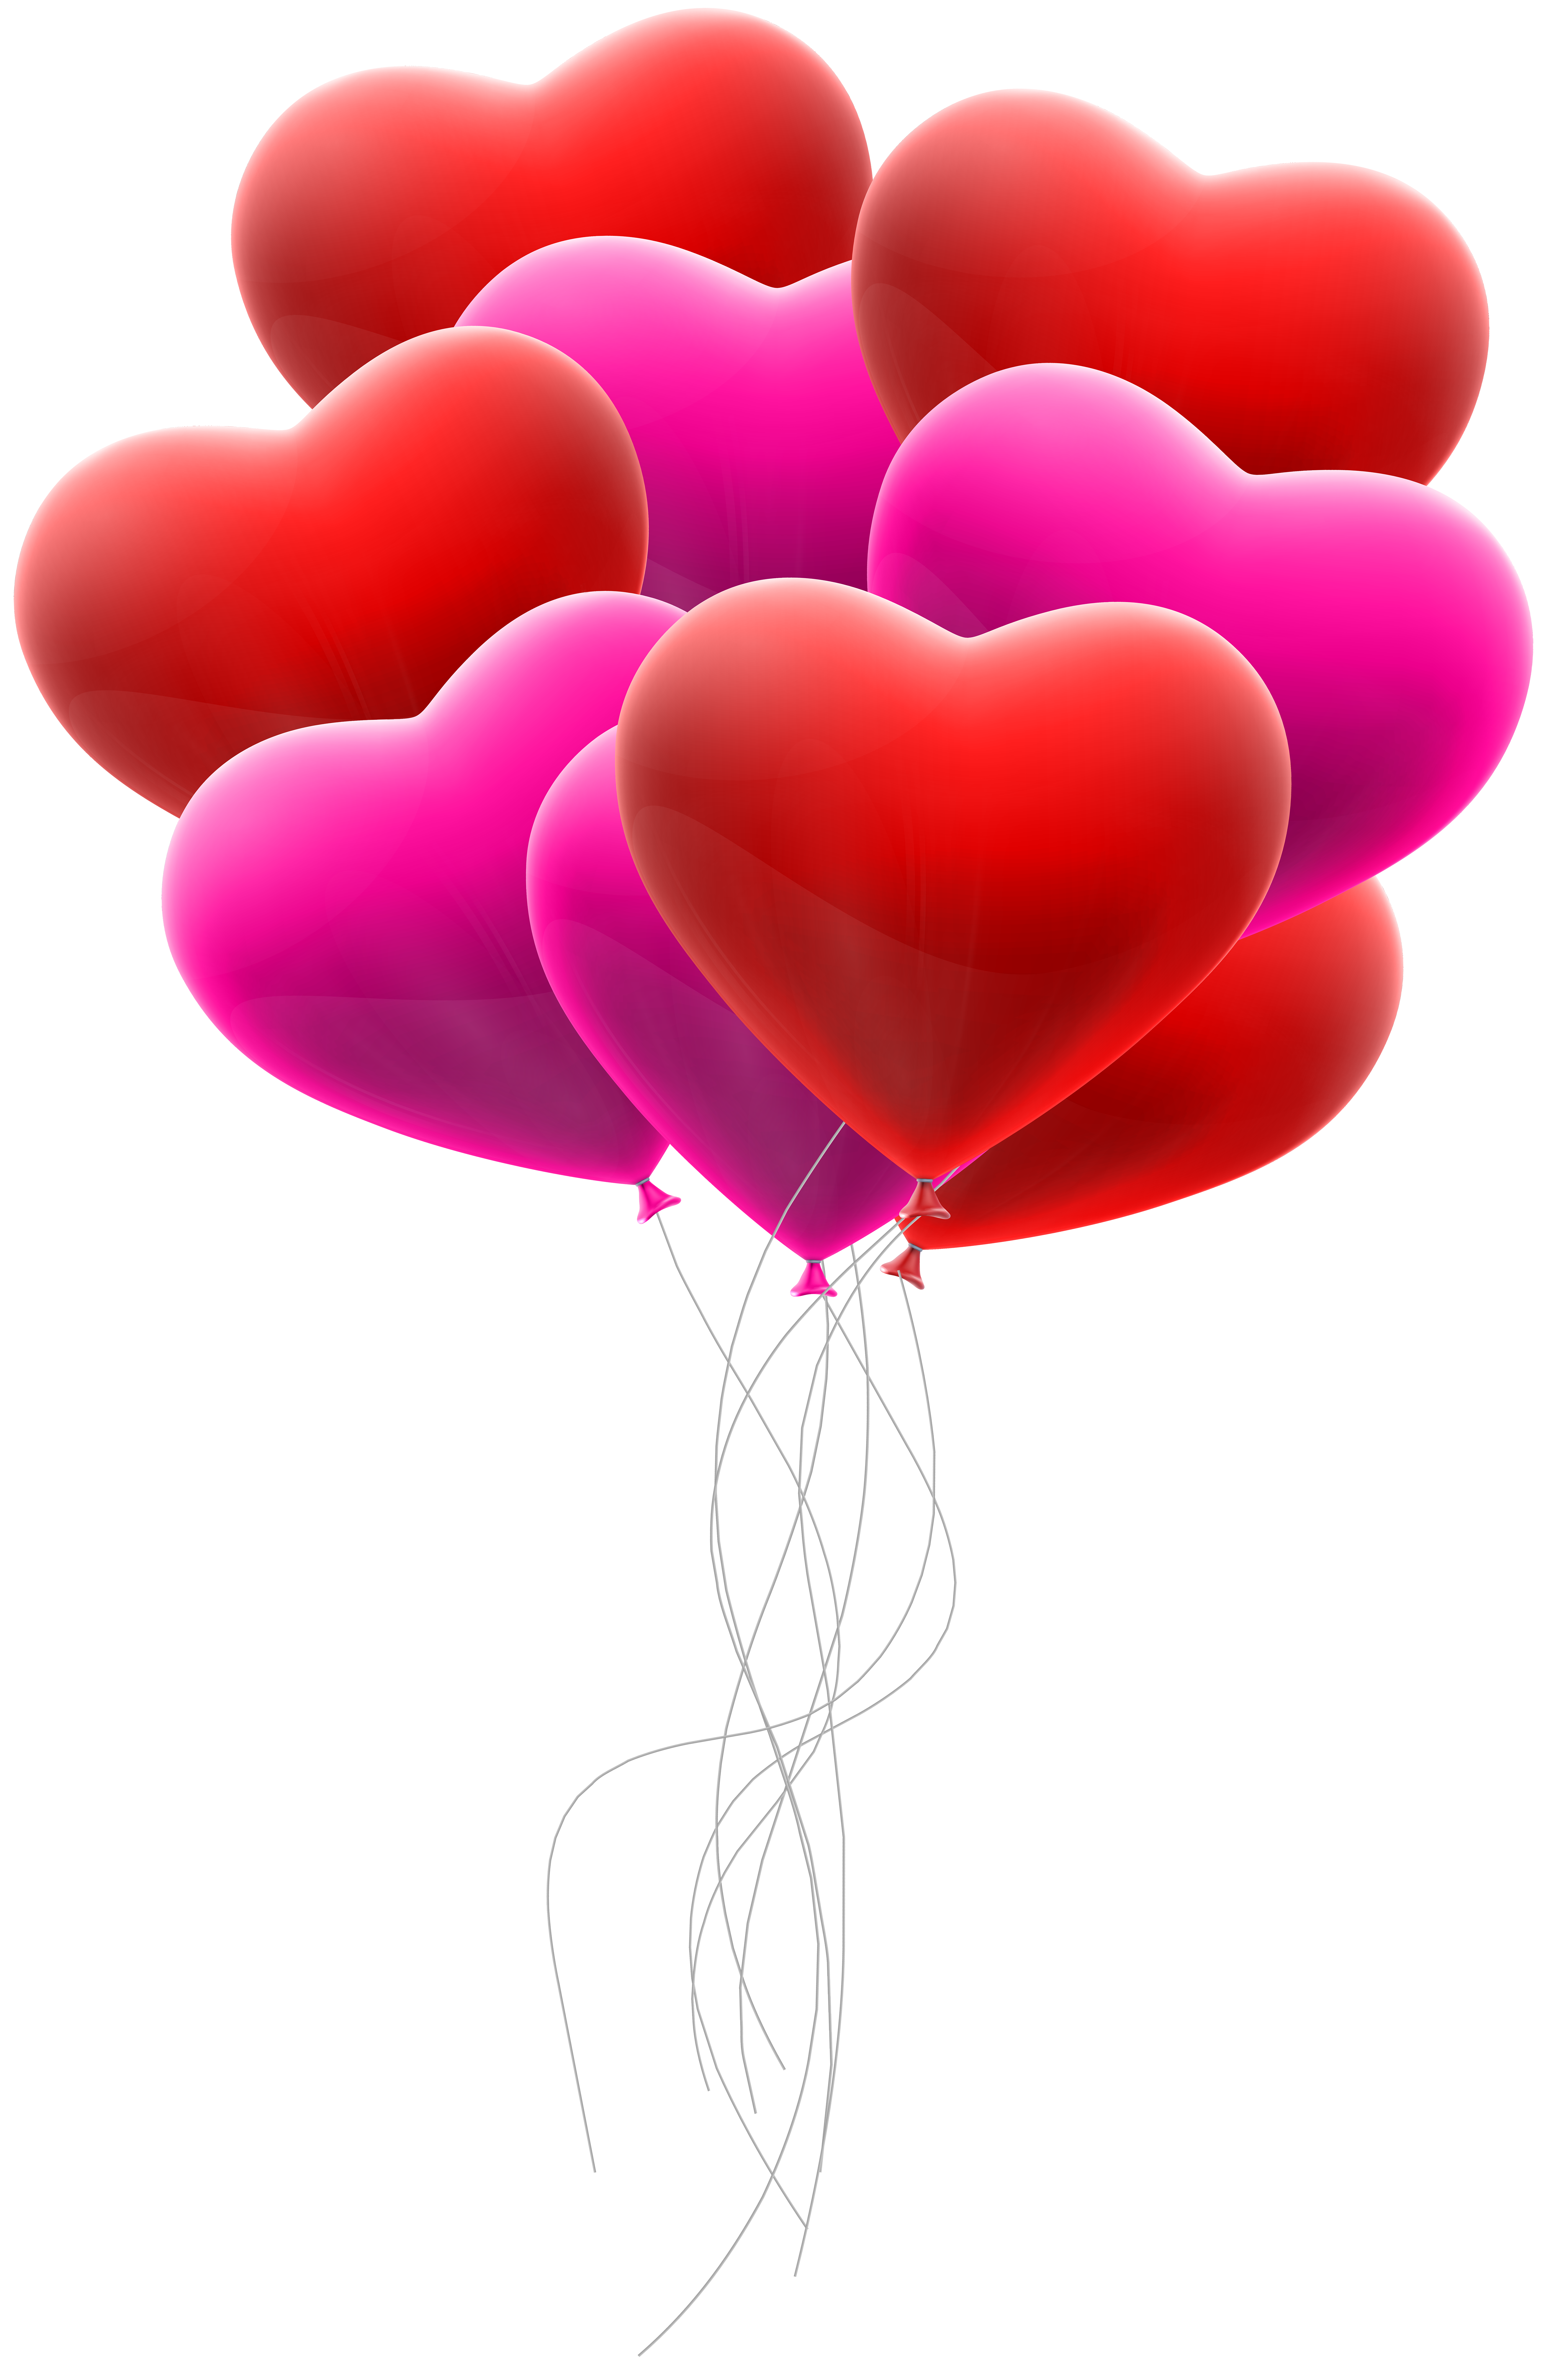 Hearts clipart bunch Full Gallery Transparent size Art